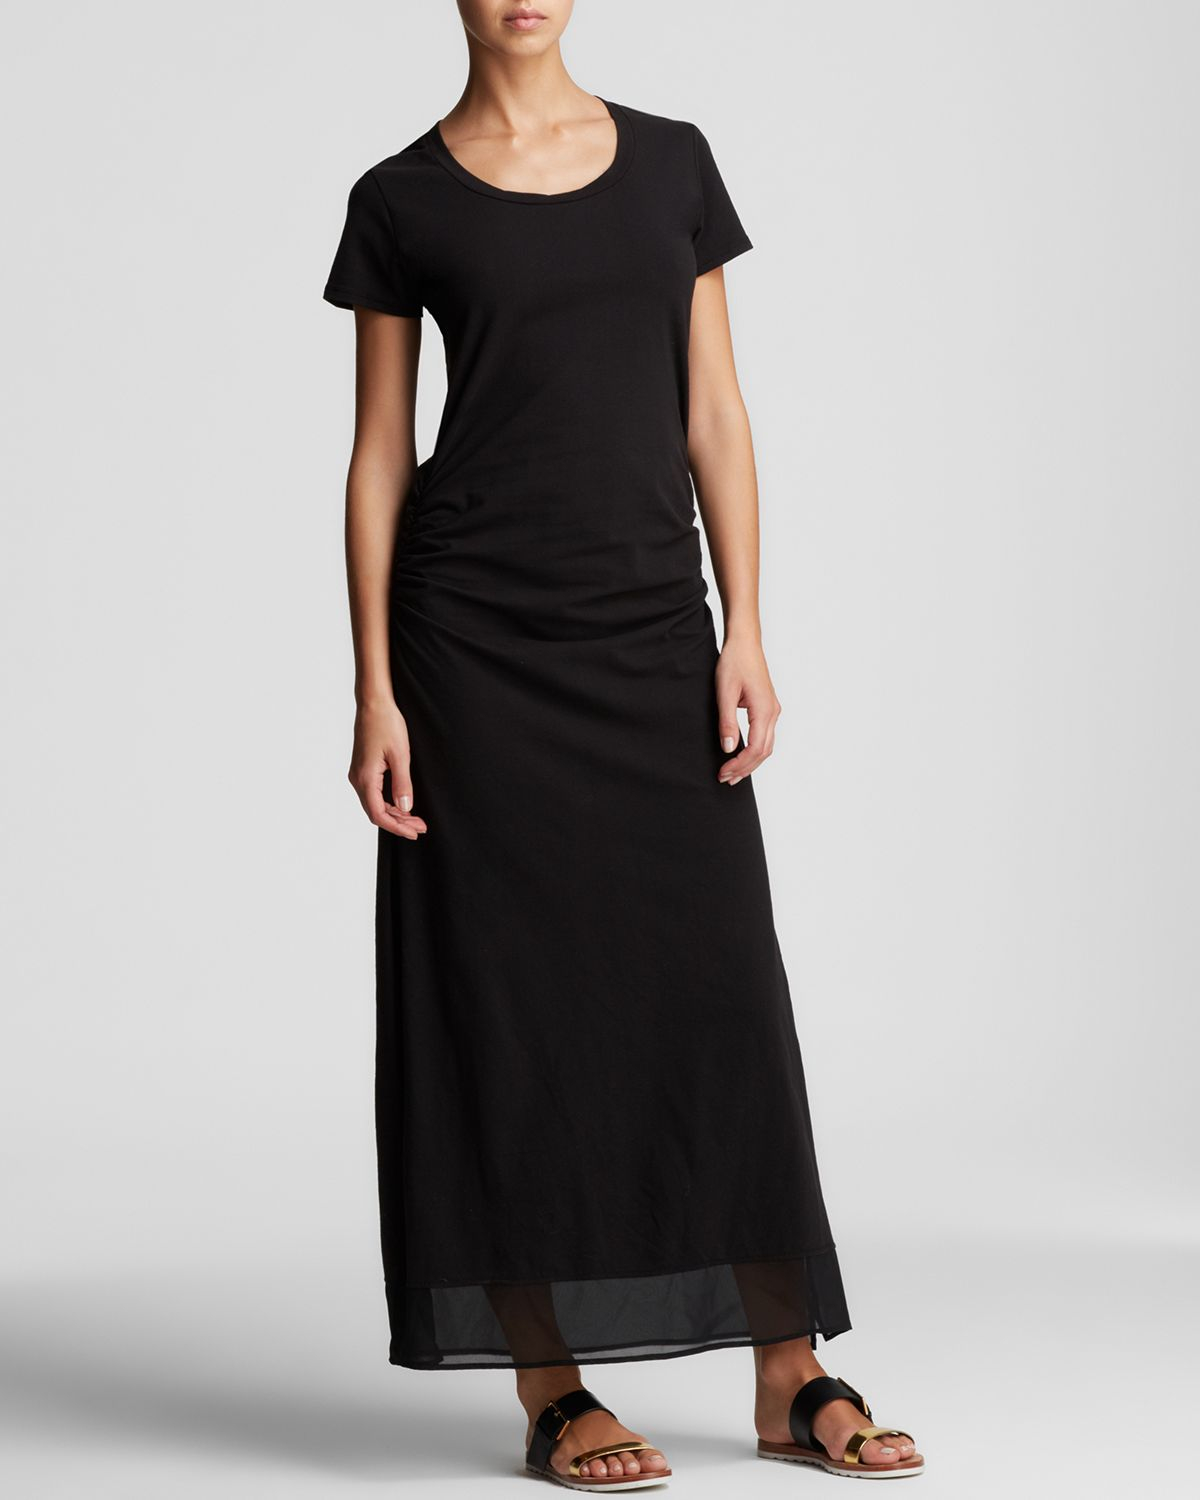 Tommy Bahama T Shirt Maxi Dress Swim Cover Up In Black Lyst